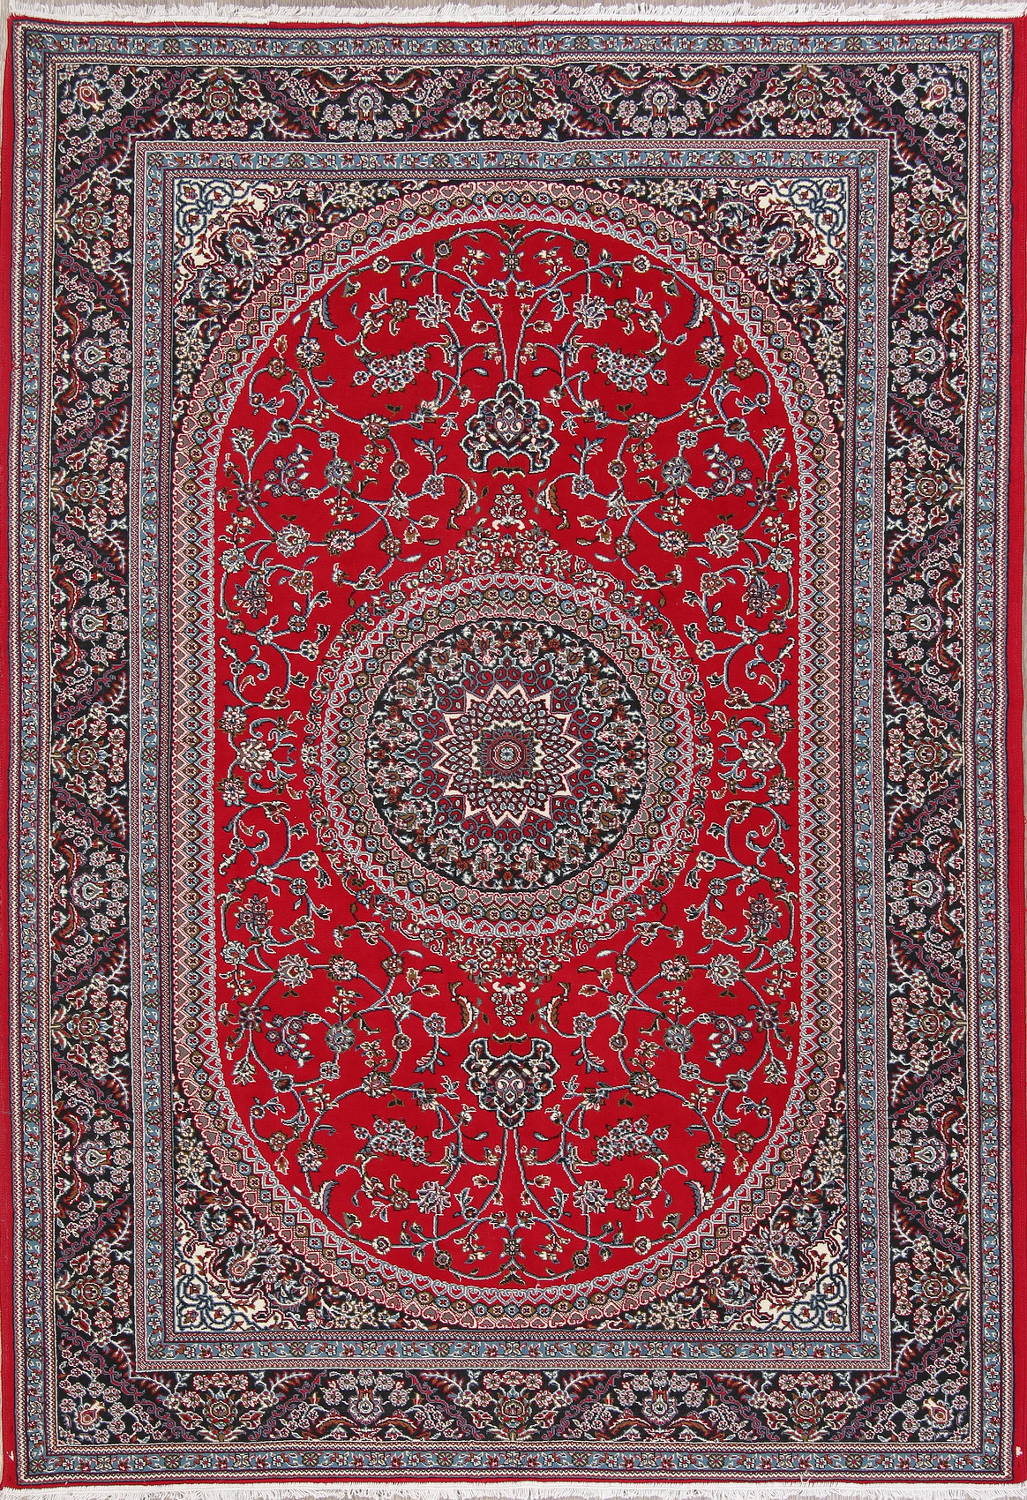 Floral Red Tabriz Persian Area Rug 7x10 image 1